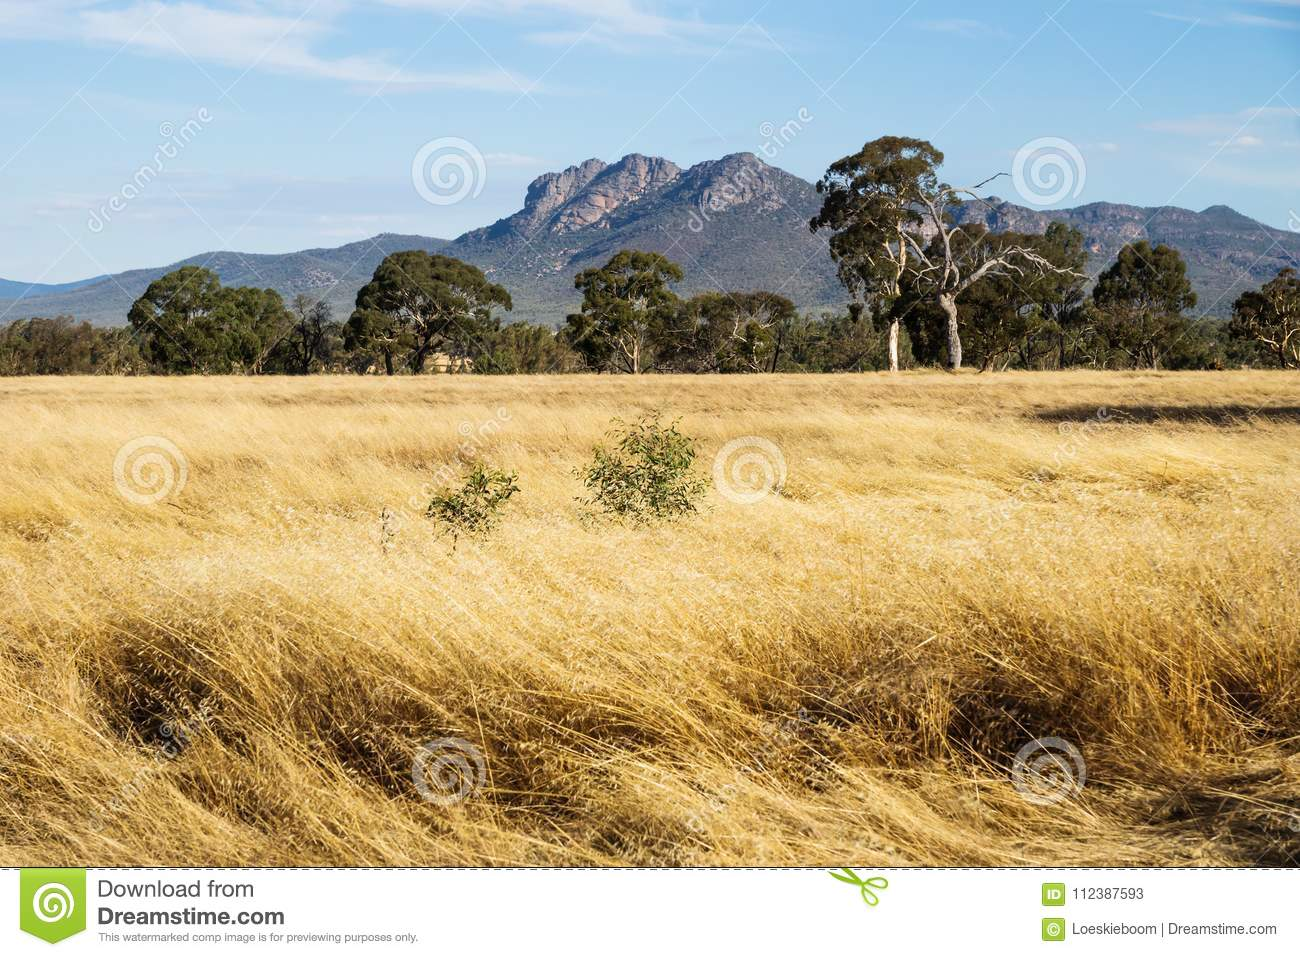 Dry grassland landscape in the bush with Grampians mountains in the background, Victoria, Australia